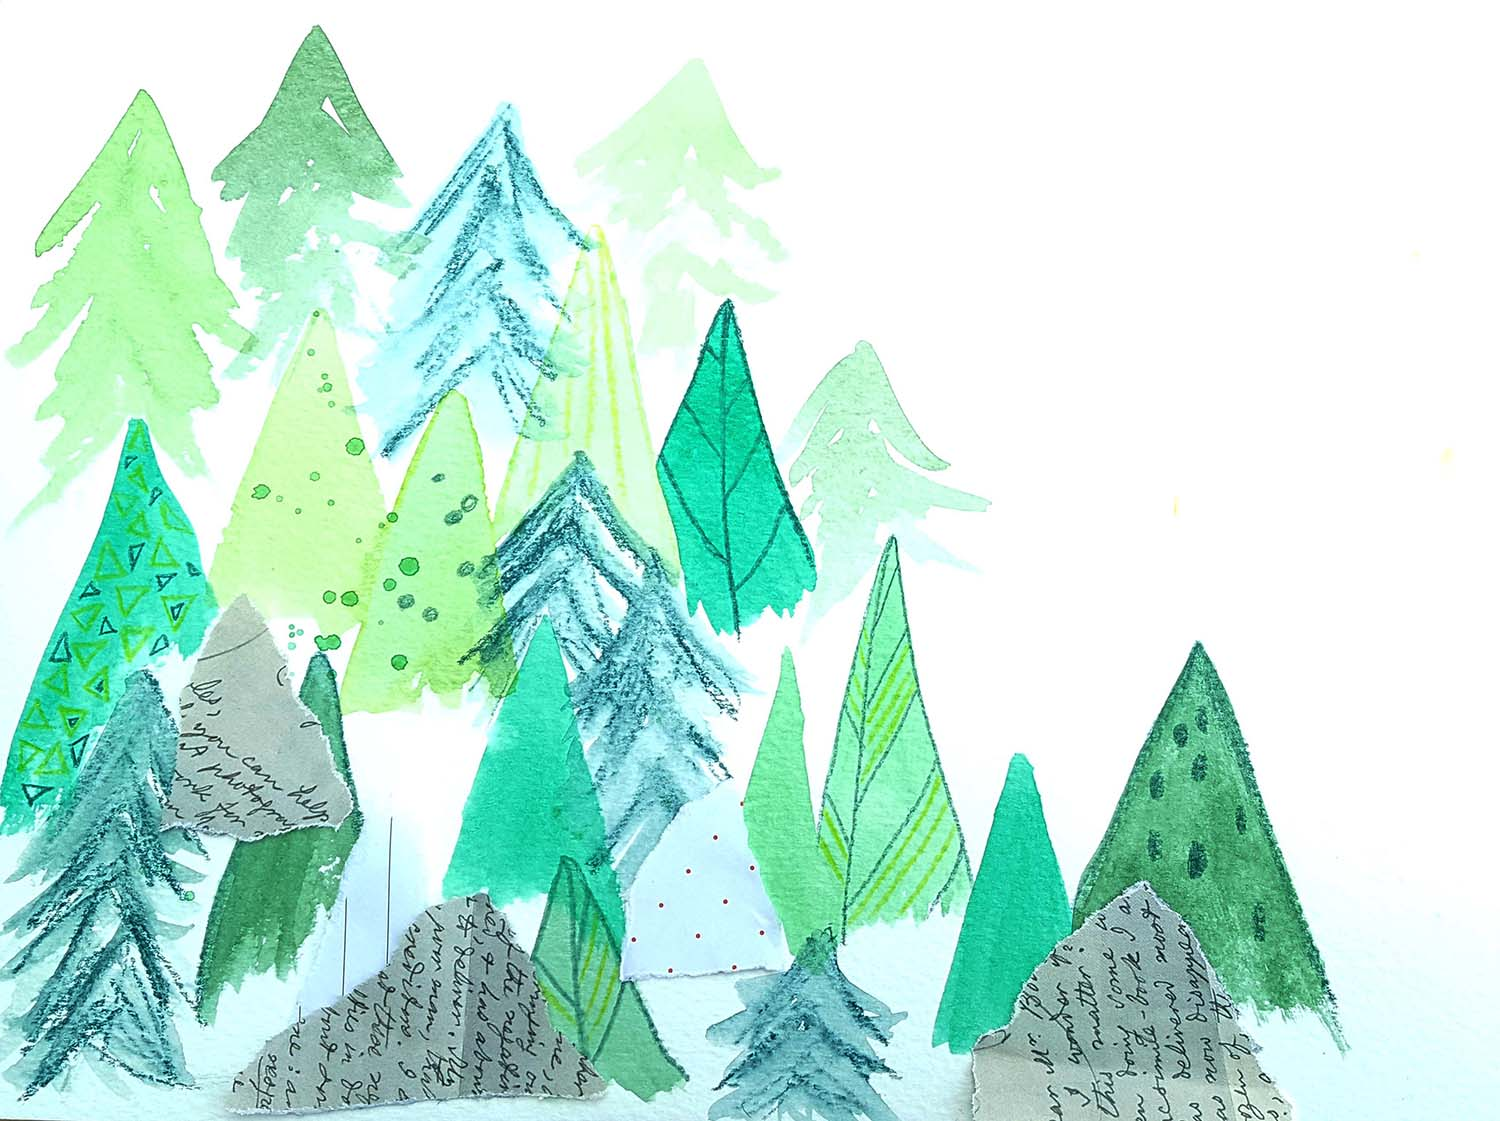 Watercolour & collage forest